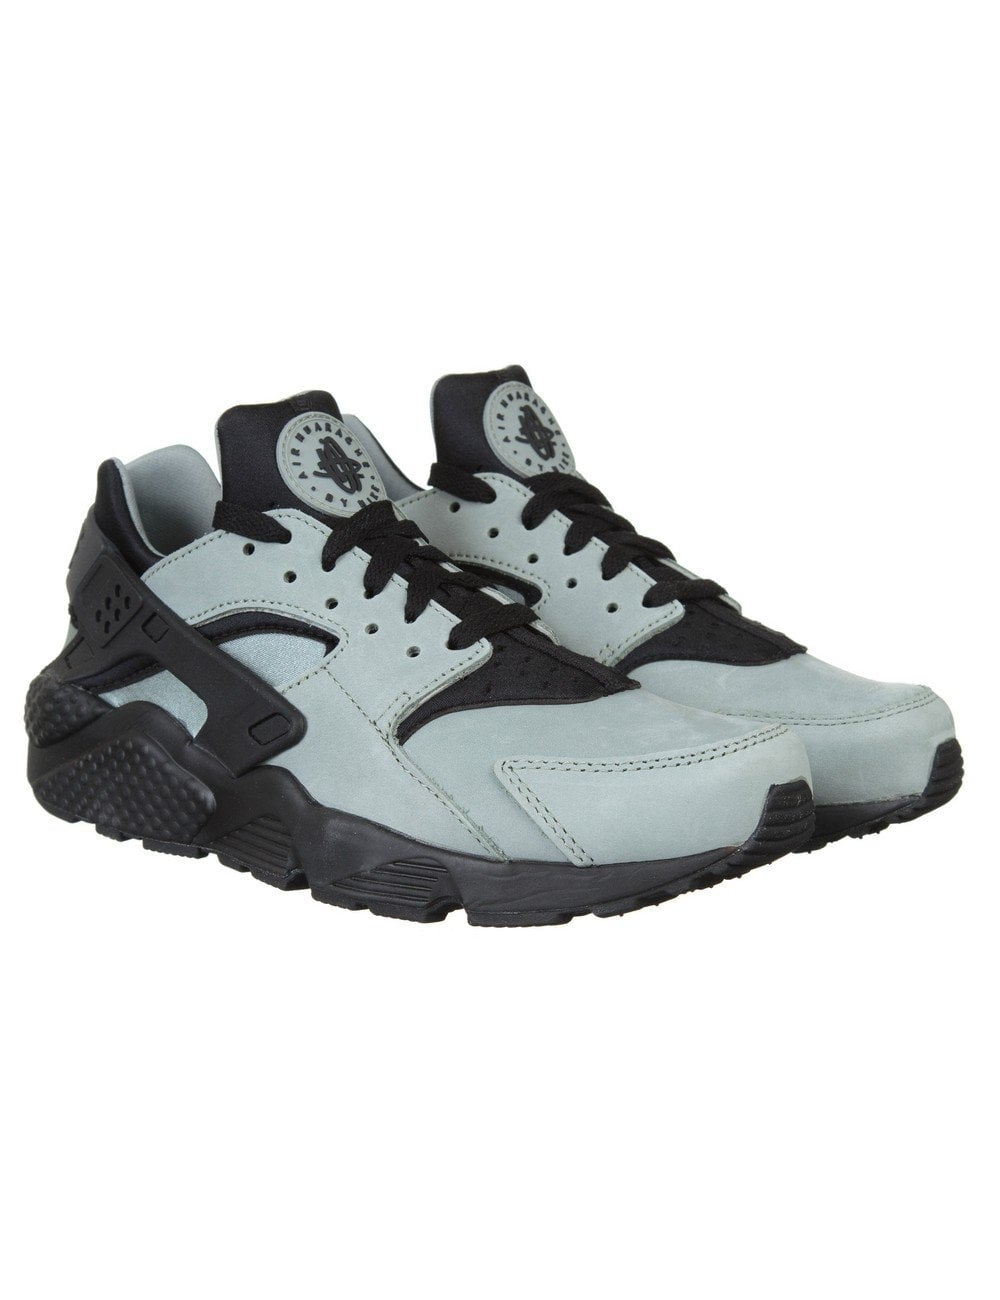 Nike Air Huarache Run PRM: Mica GreenBlack | This Shoes in